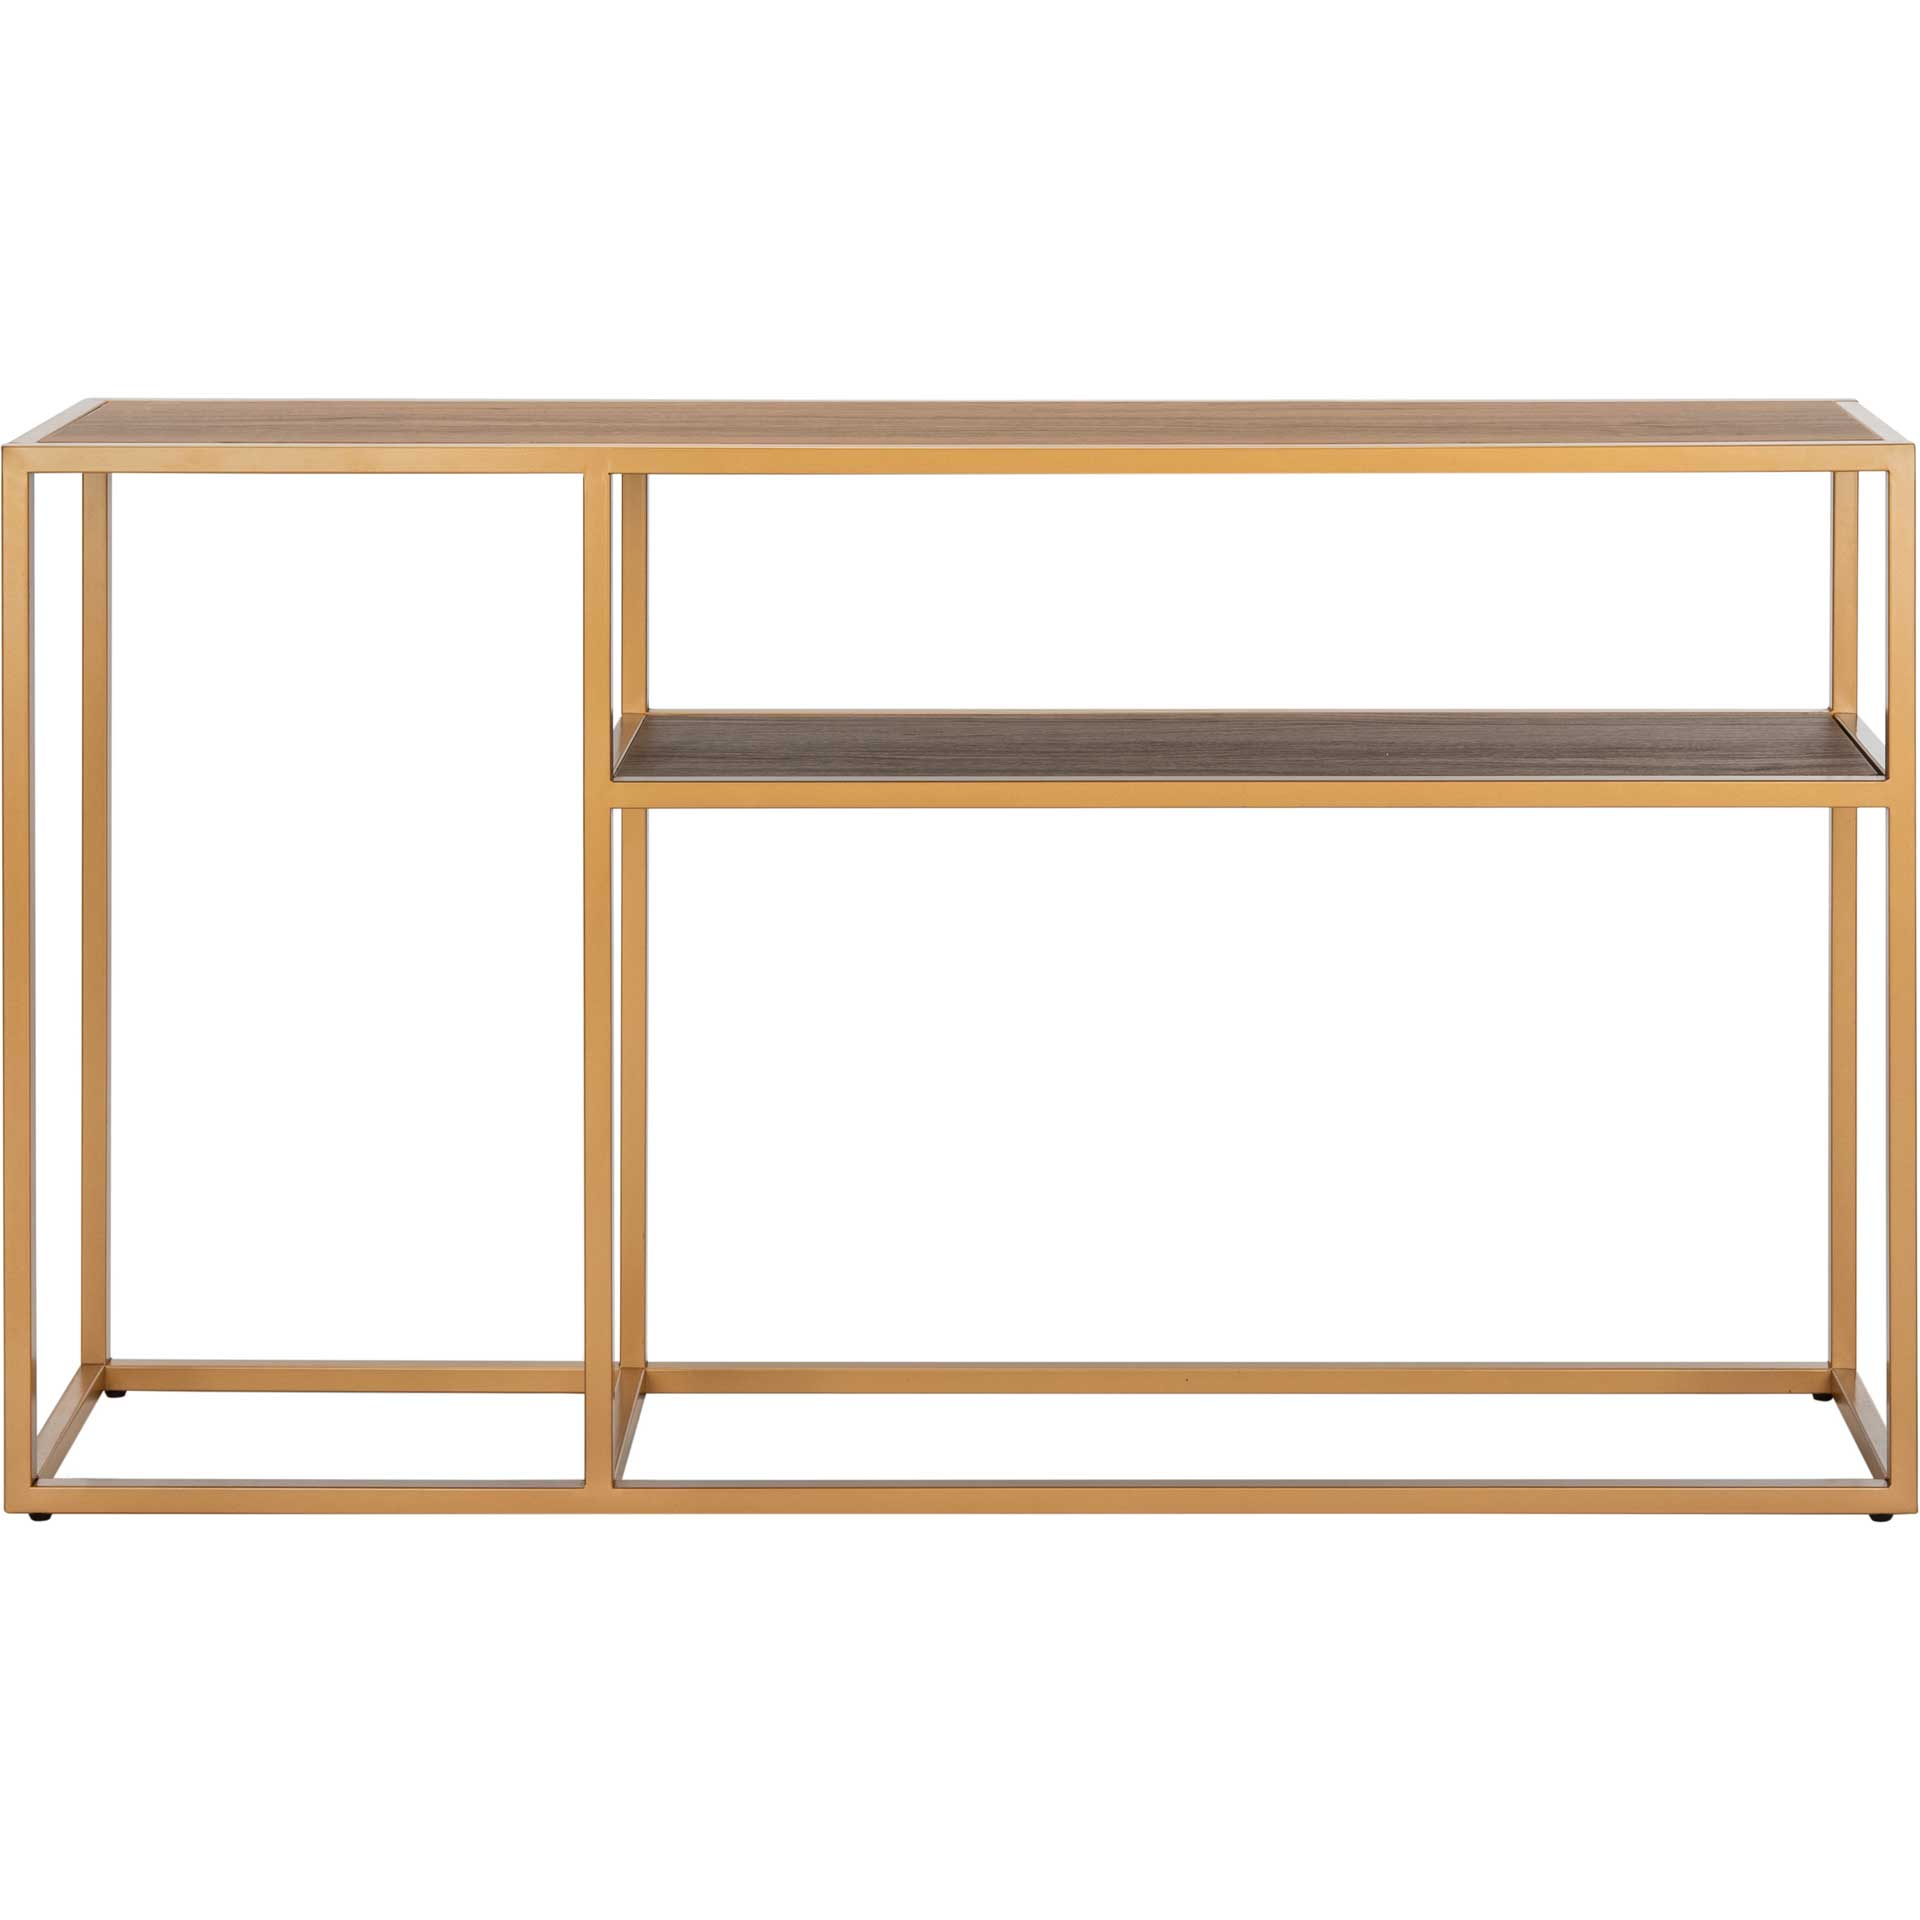 Octavia Console Table Walnut/Gold